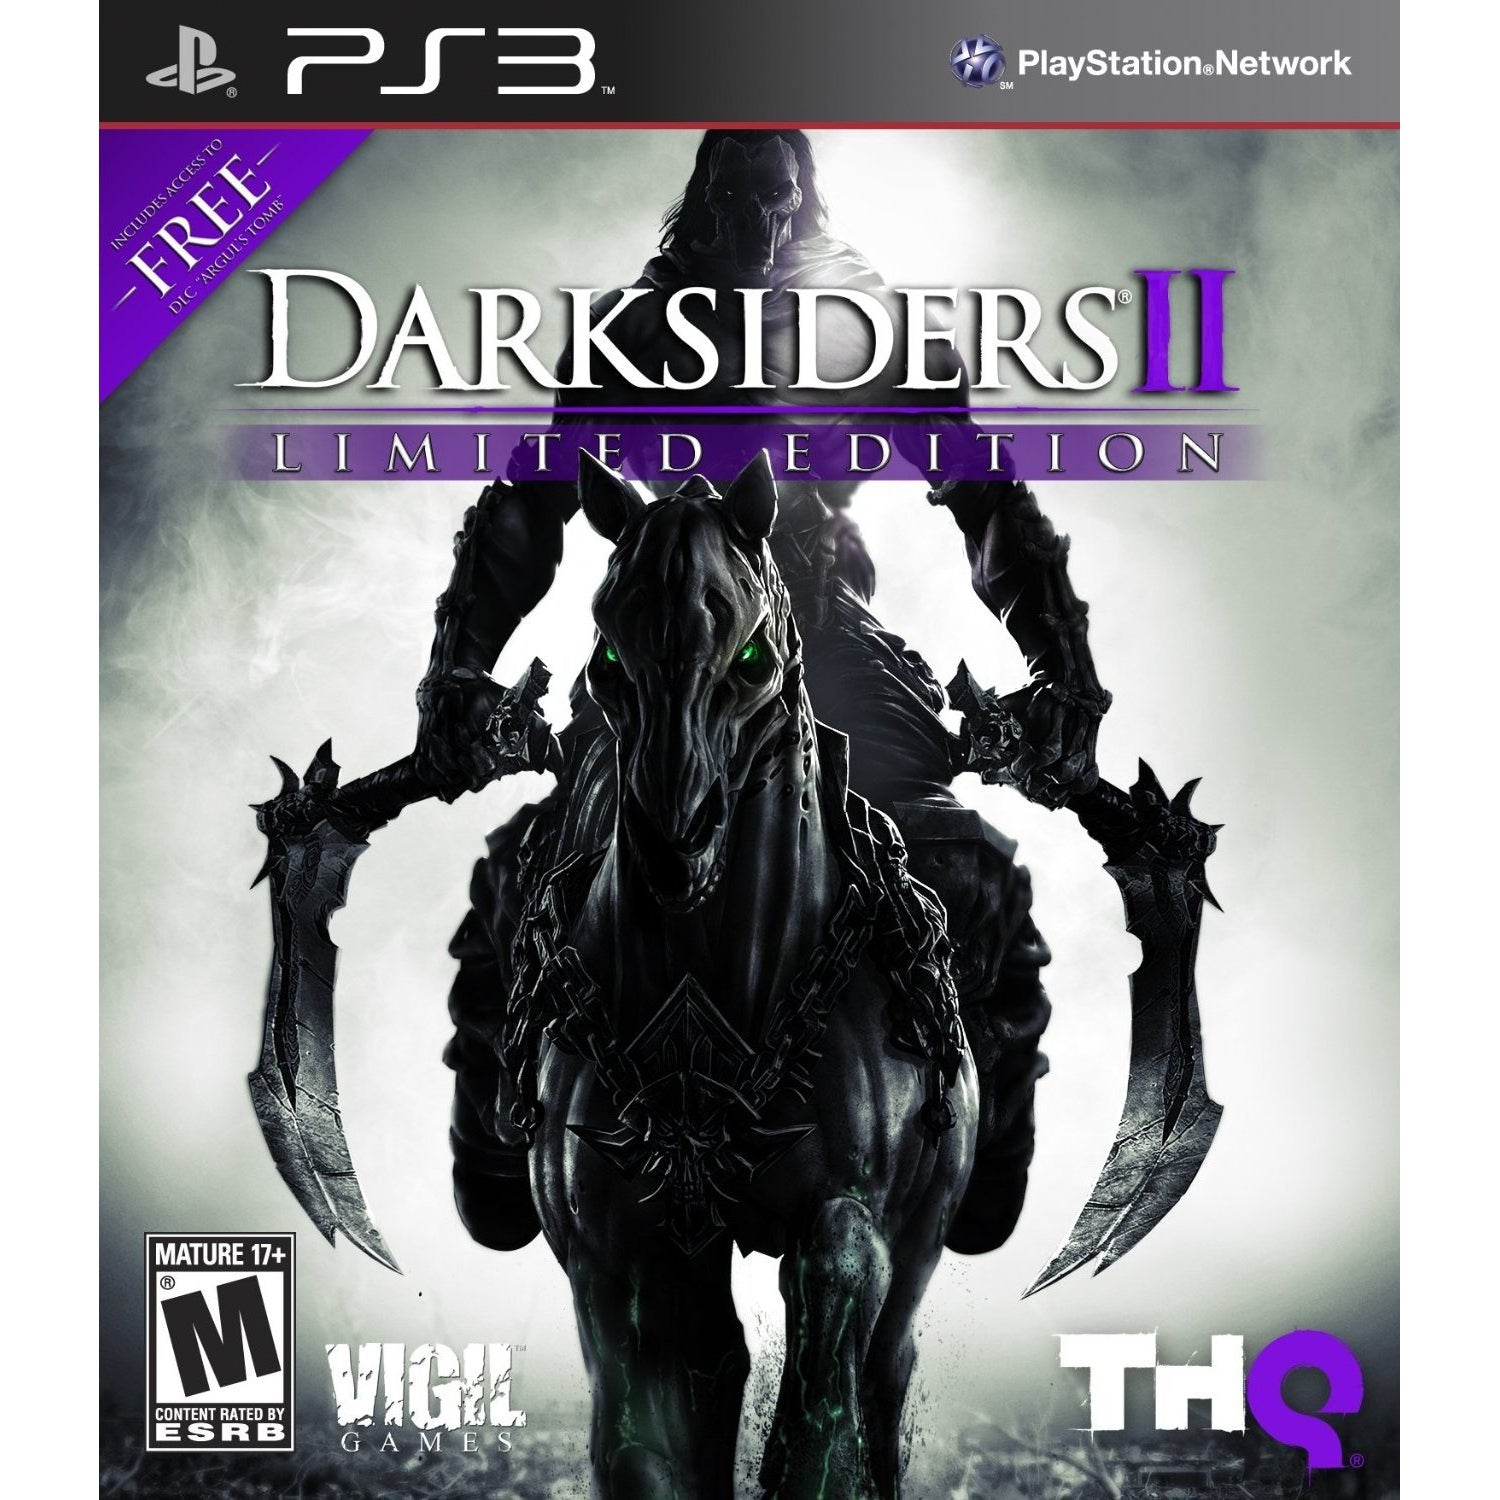 Darksiders II (Limited Edition) - PlayStation 3 (PS3) Game Complete - YourGamingShop.com - Buy, Sell, Trade Video Games Online. 120 Day Warranty. Satisfaction Guaranteed.